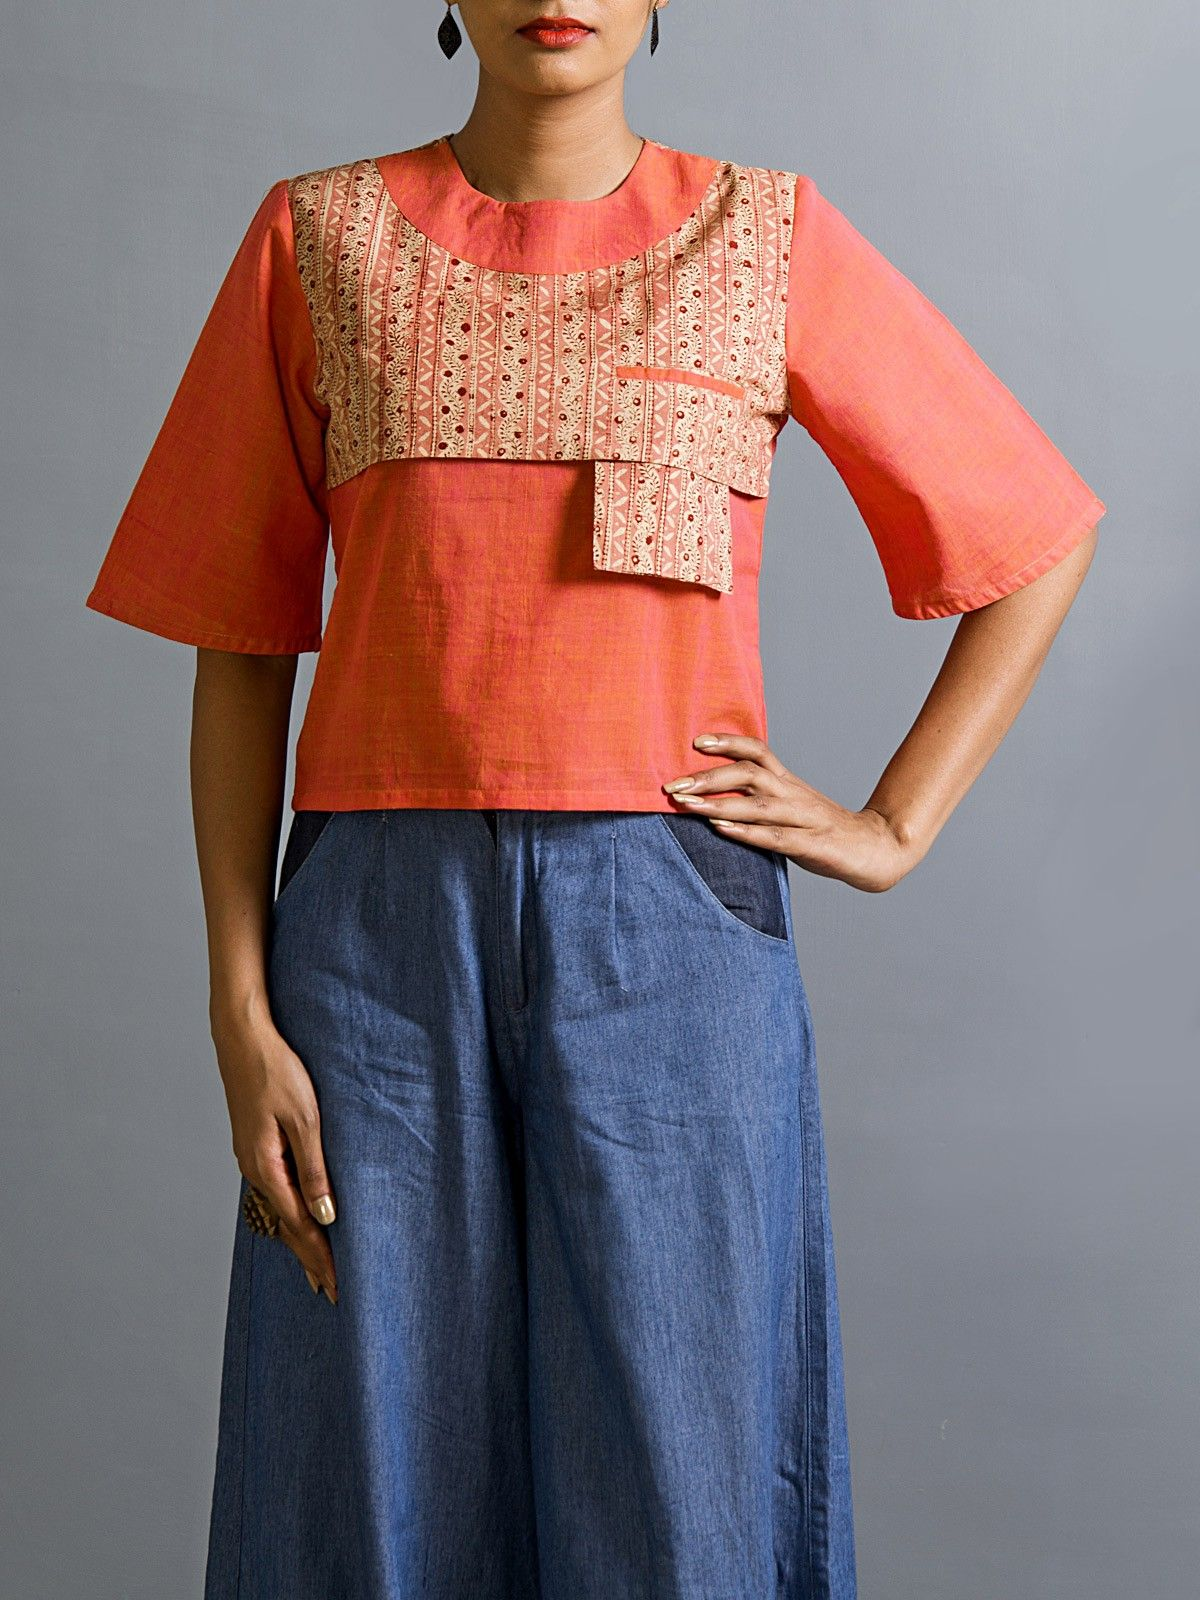 Apadi satchel crop top